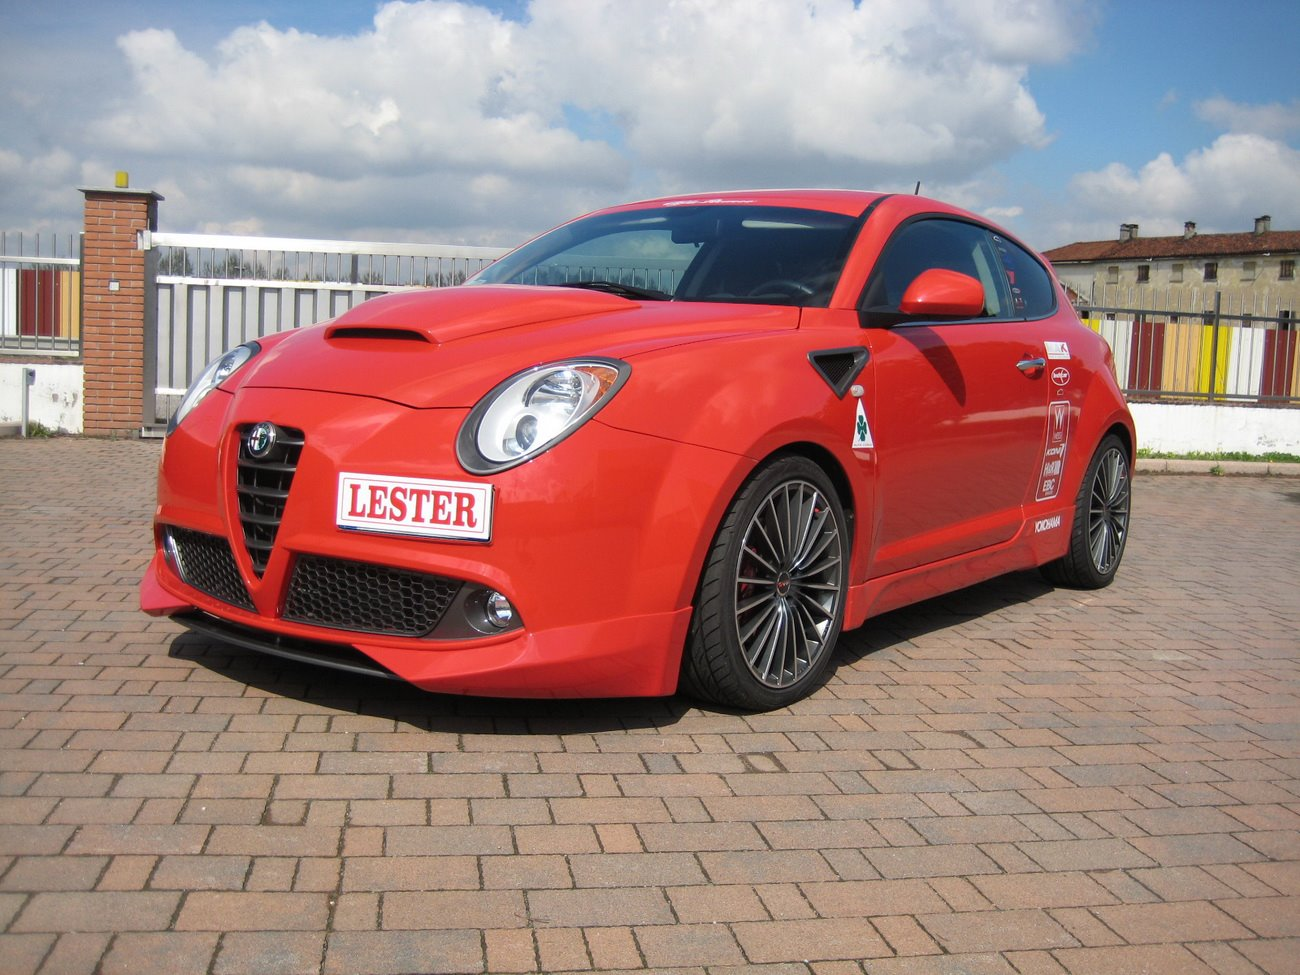 alfa romeo mito par lester gta ttendu et tu n 39 es pas venue. Black Bedroom Furniture Sets. Home Design Ideas